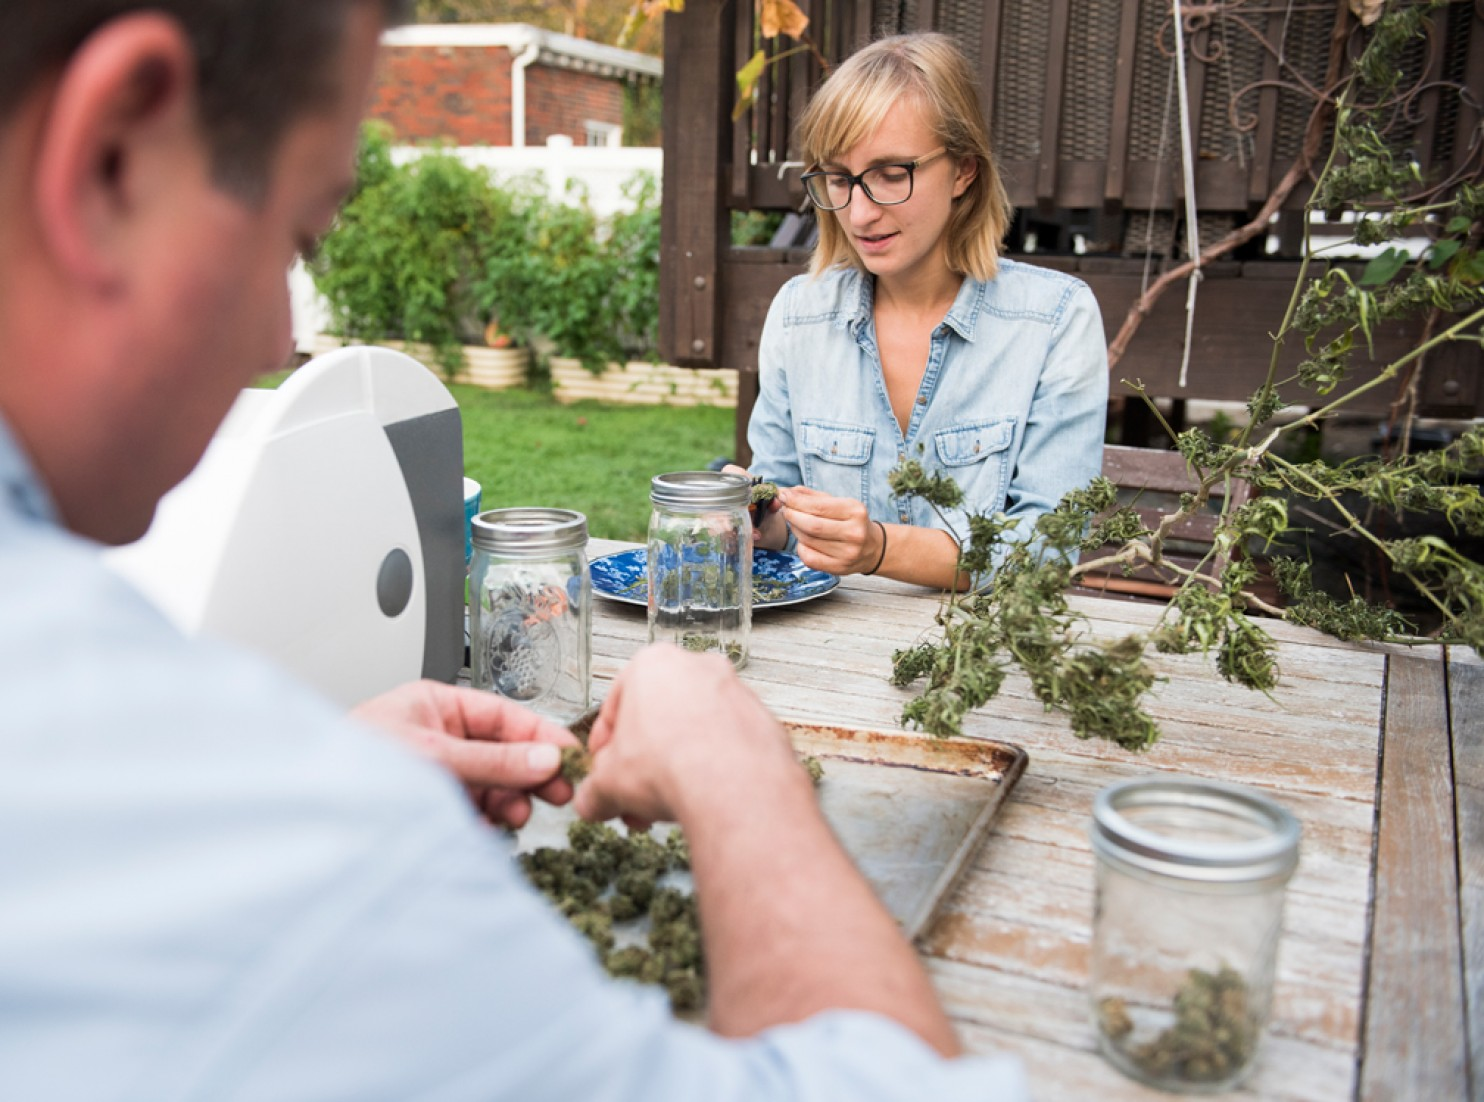 Natalie Carver helps would-be pot growers keep cannabis plants healthy. (Jason Hornick for Express)